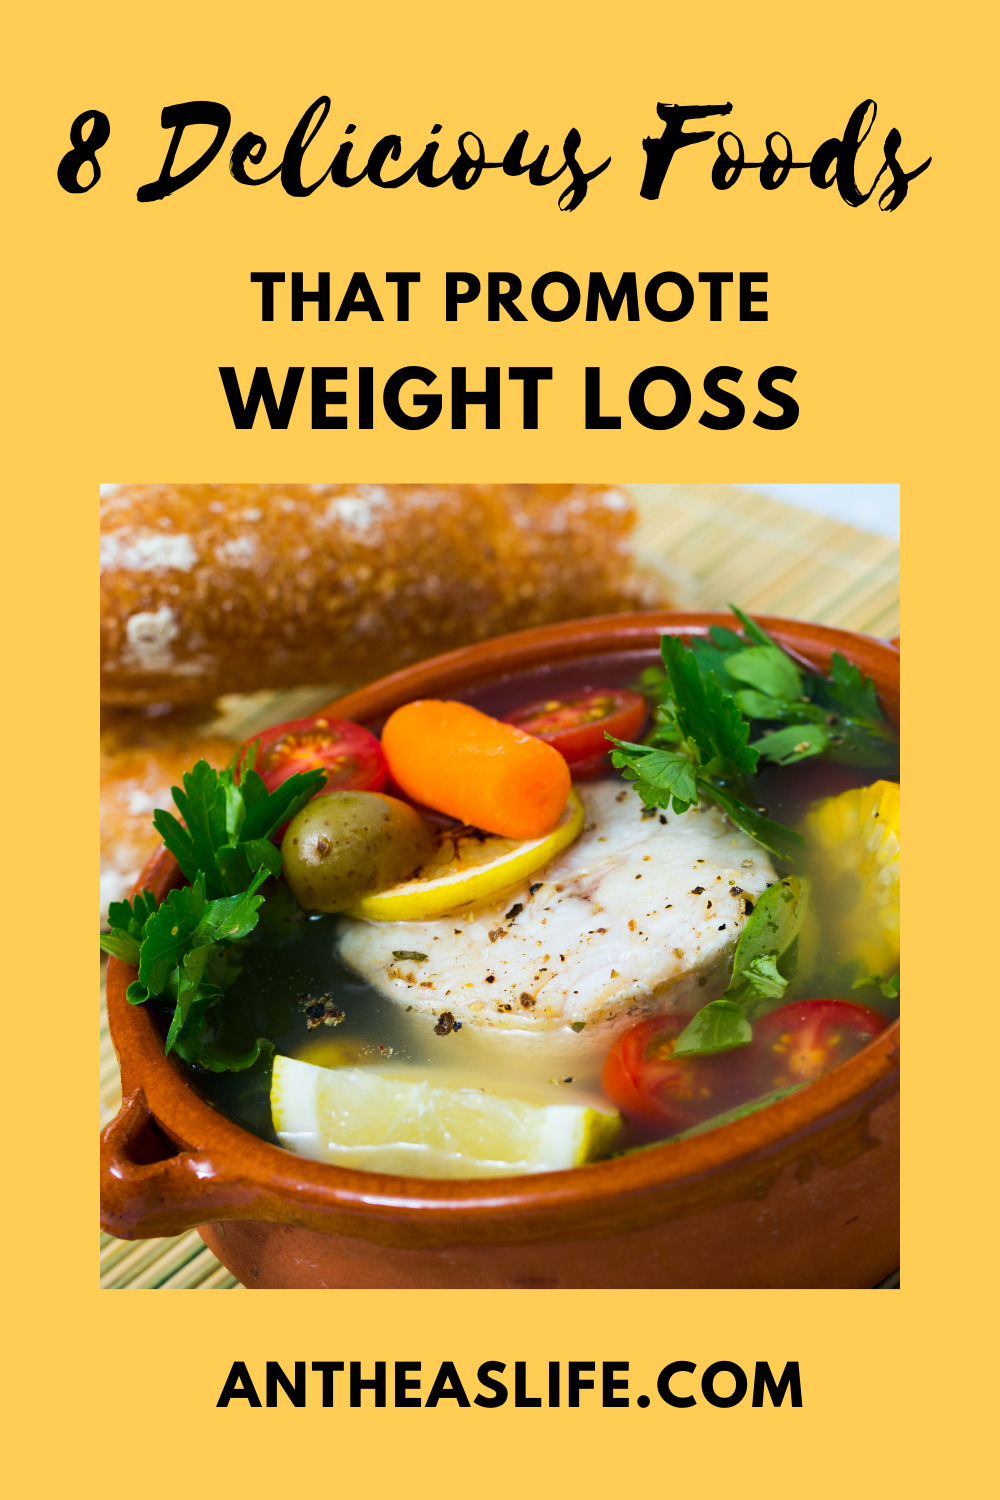 8-delicious-foods-that-promote-weight-loss